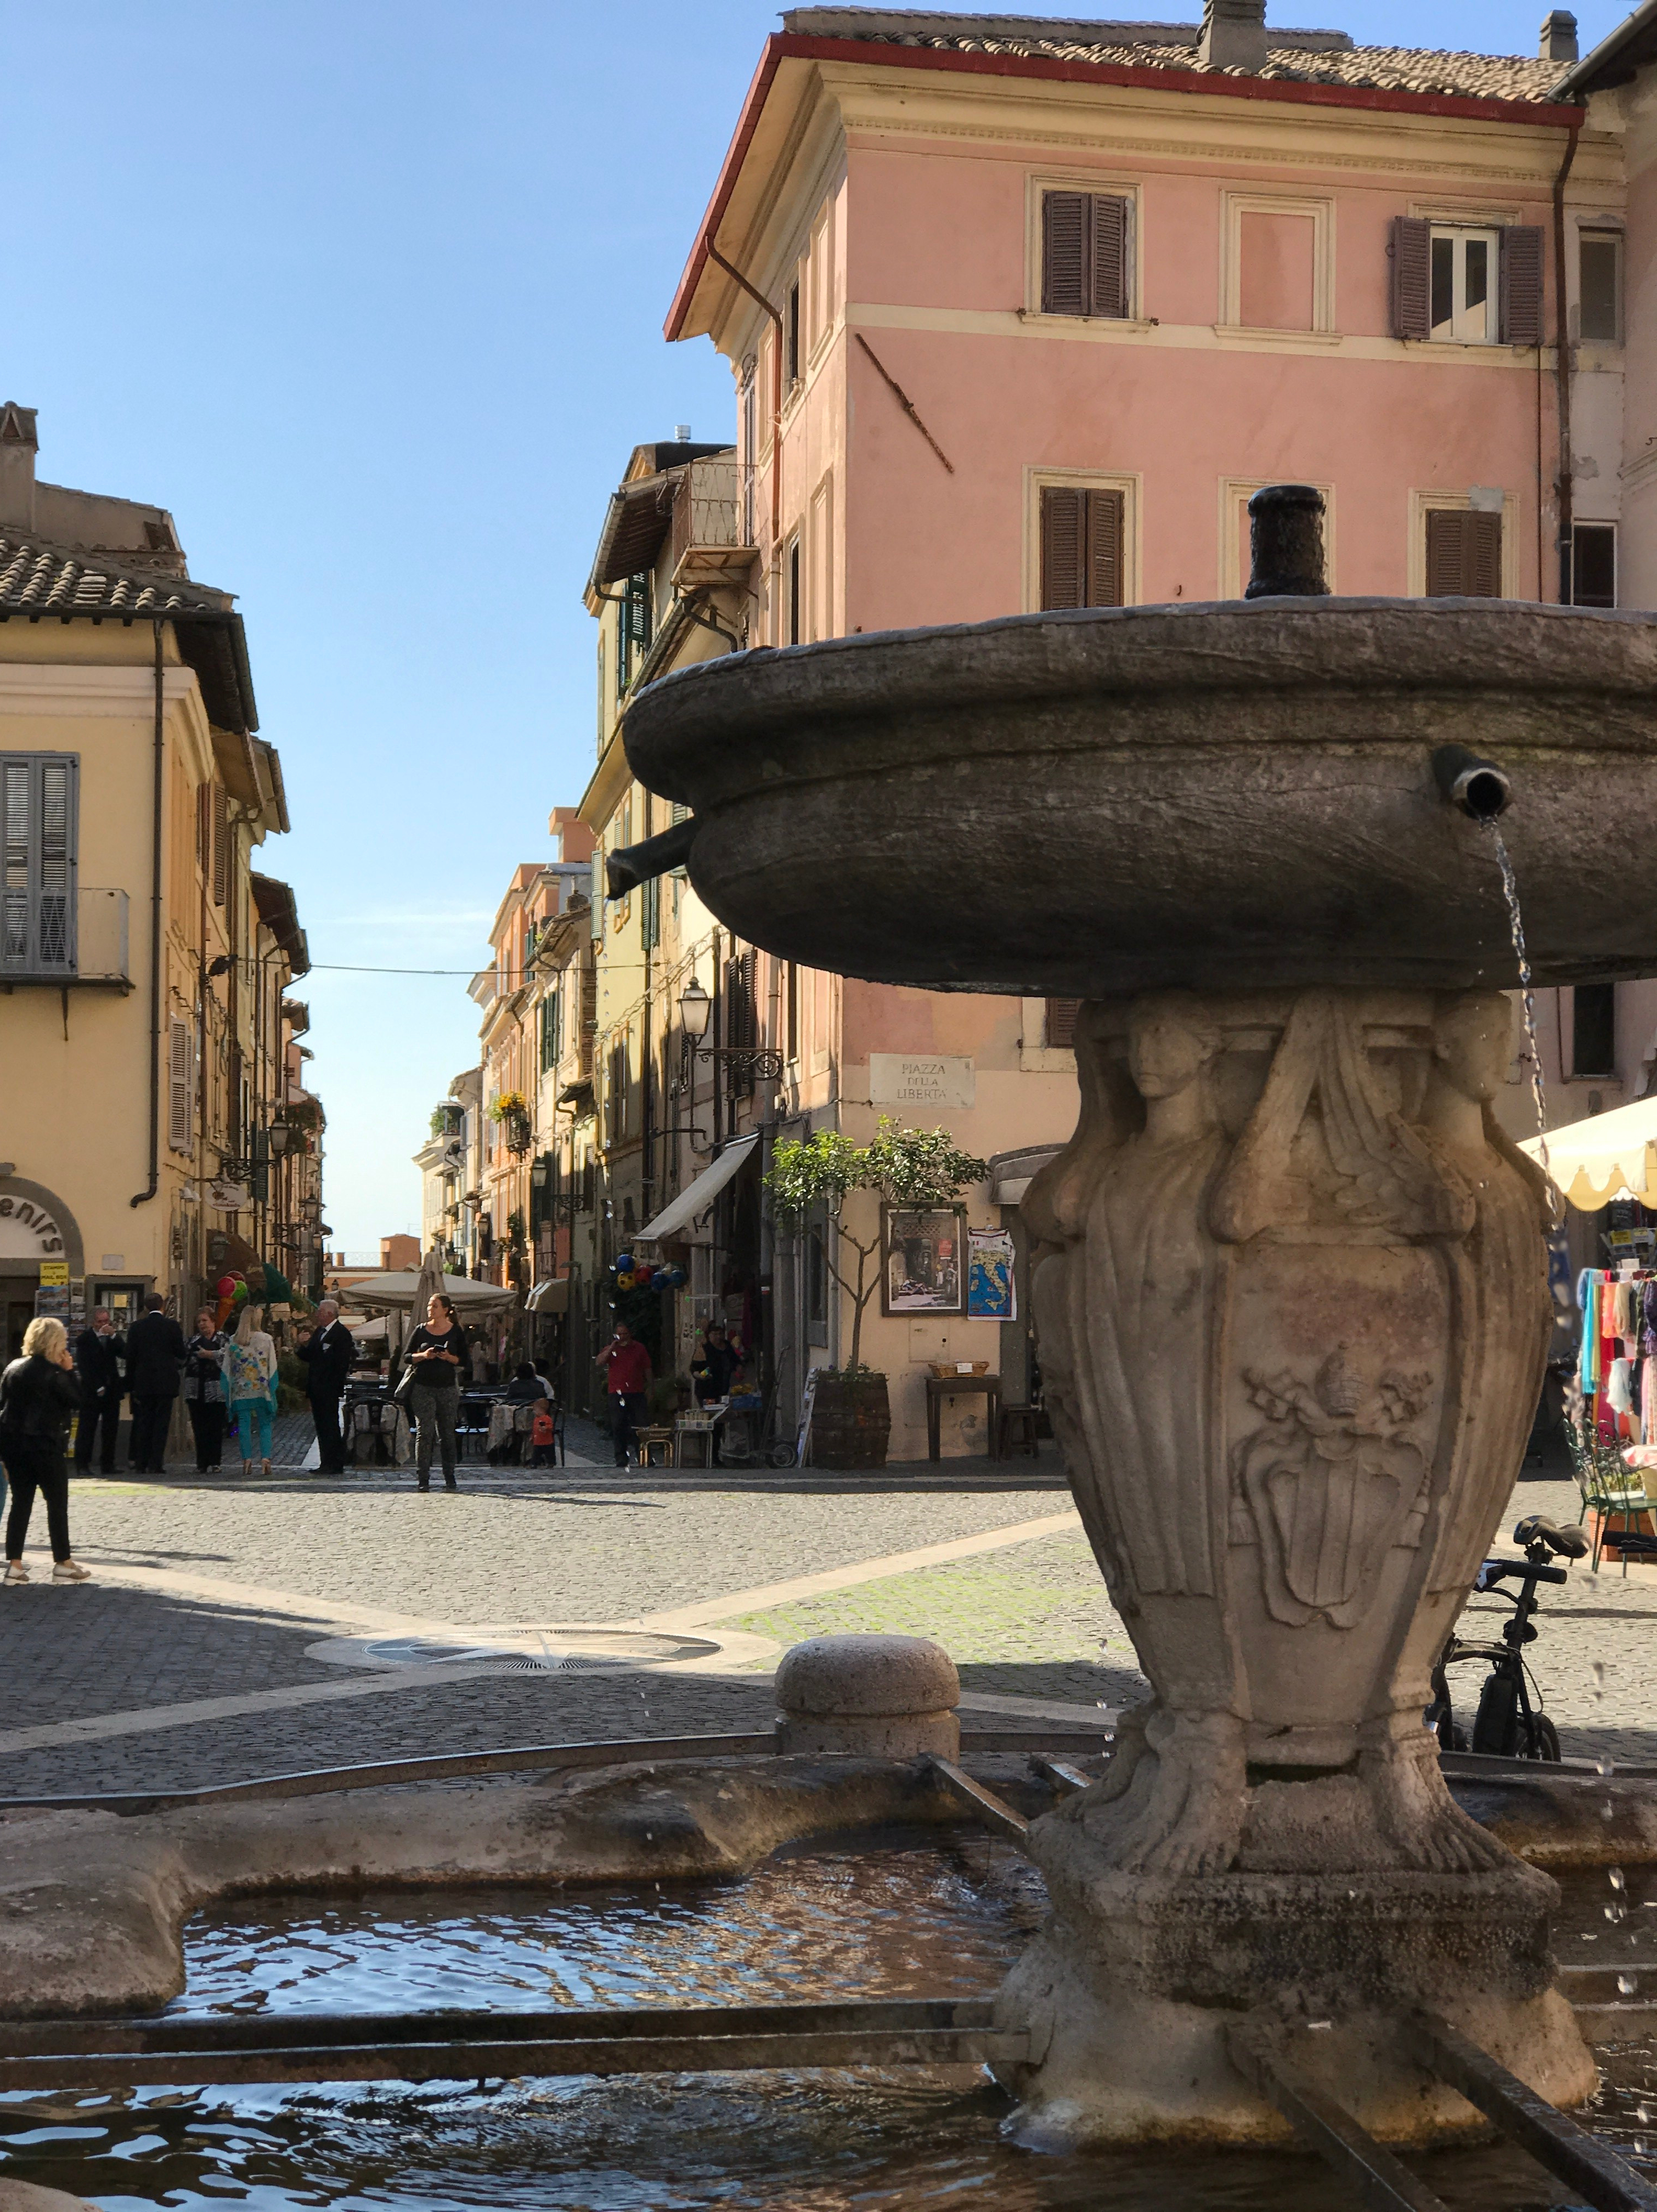 castel-gandalfo_town-square.jpg